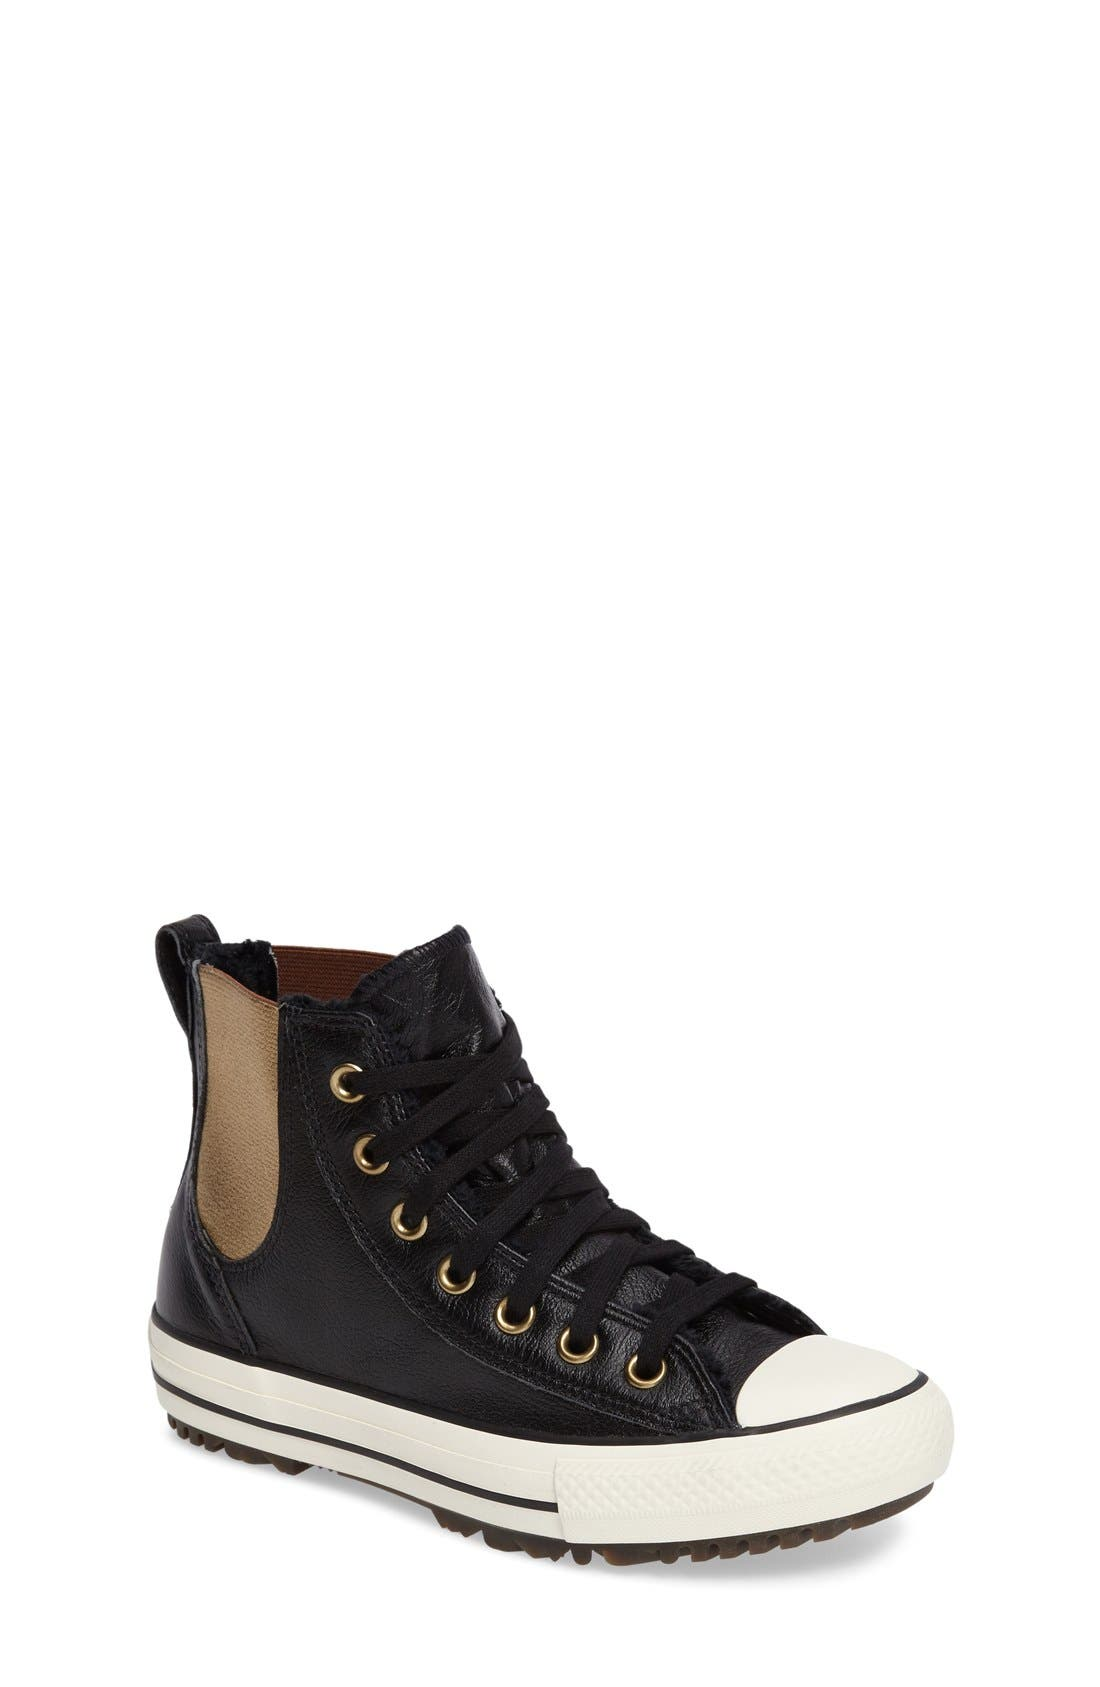 Alternate Image 1 Selected - Converse Chuck Taylor® All Star® Faux Fur Chelsea Sneaker (Women)